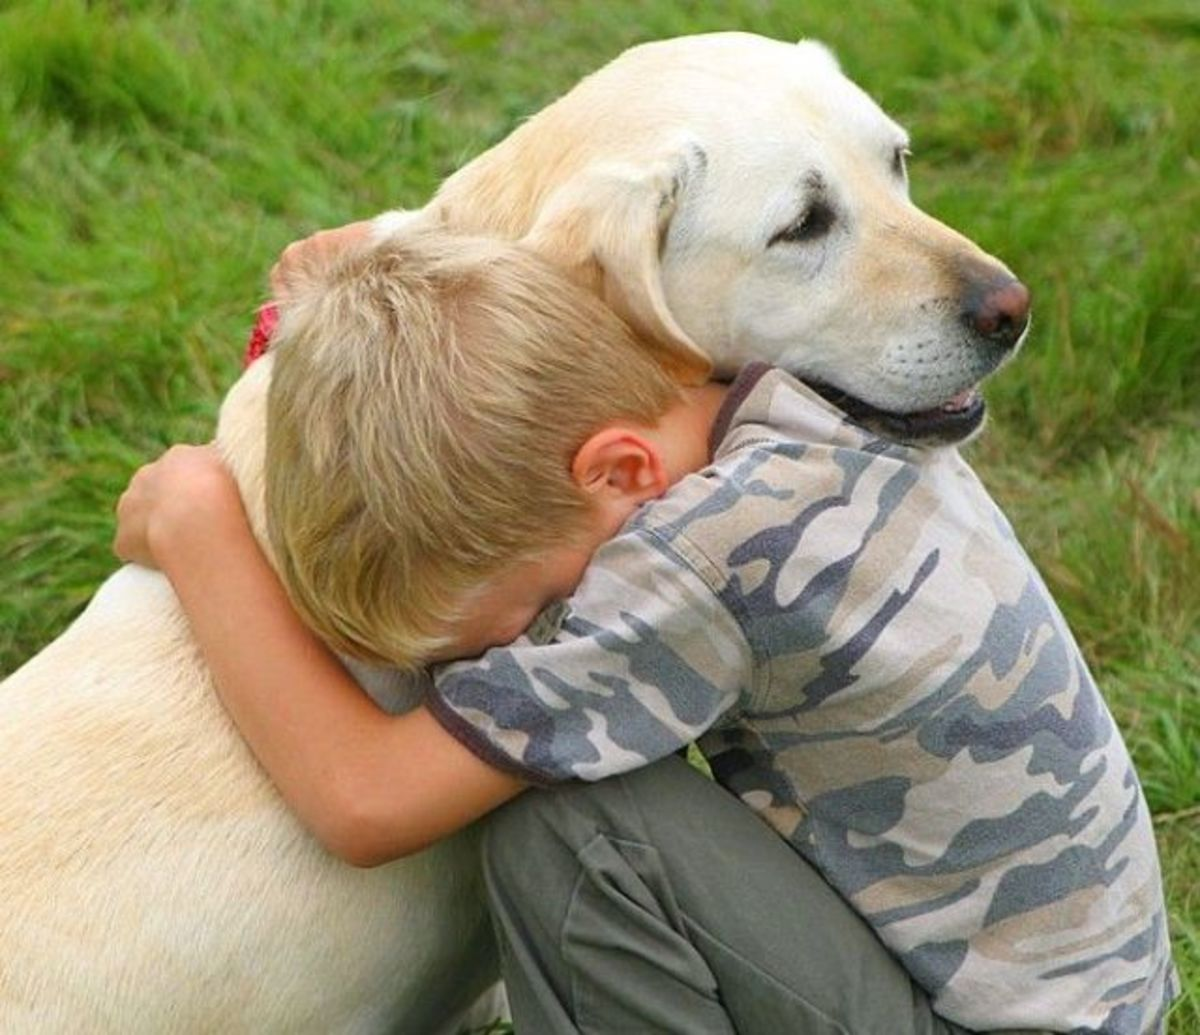 How to Develop Empathy in Children through Human-Animal Relationship